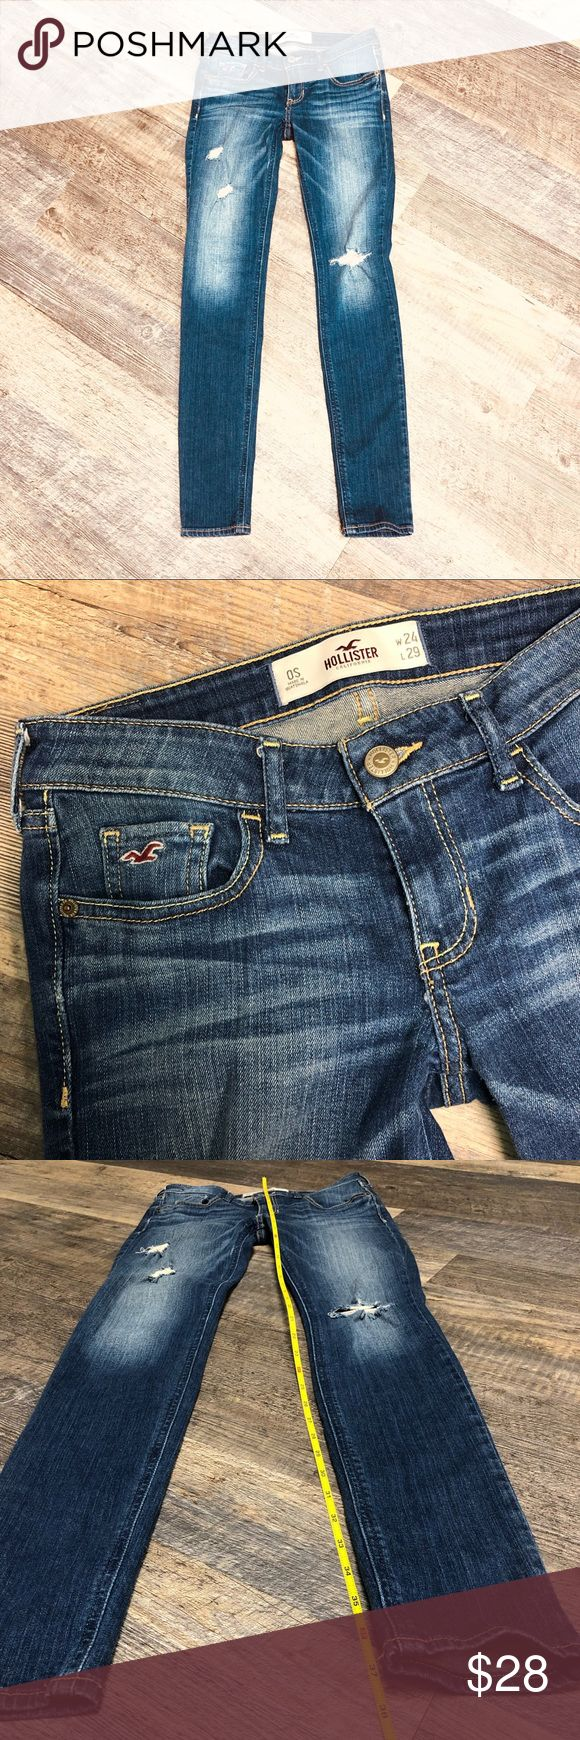 Hollister Skinny Blue Jeans Hollister dark blue skinny jeans SIZE 0  Width 24 Length 29 Worn a couple a times but still in great condition 😉 ***see...